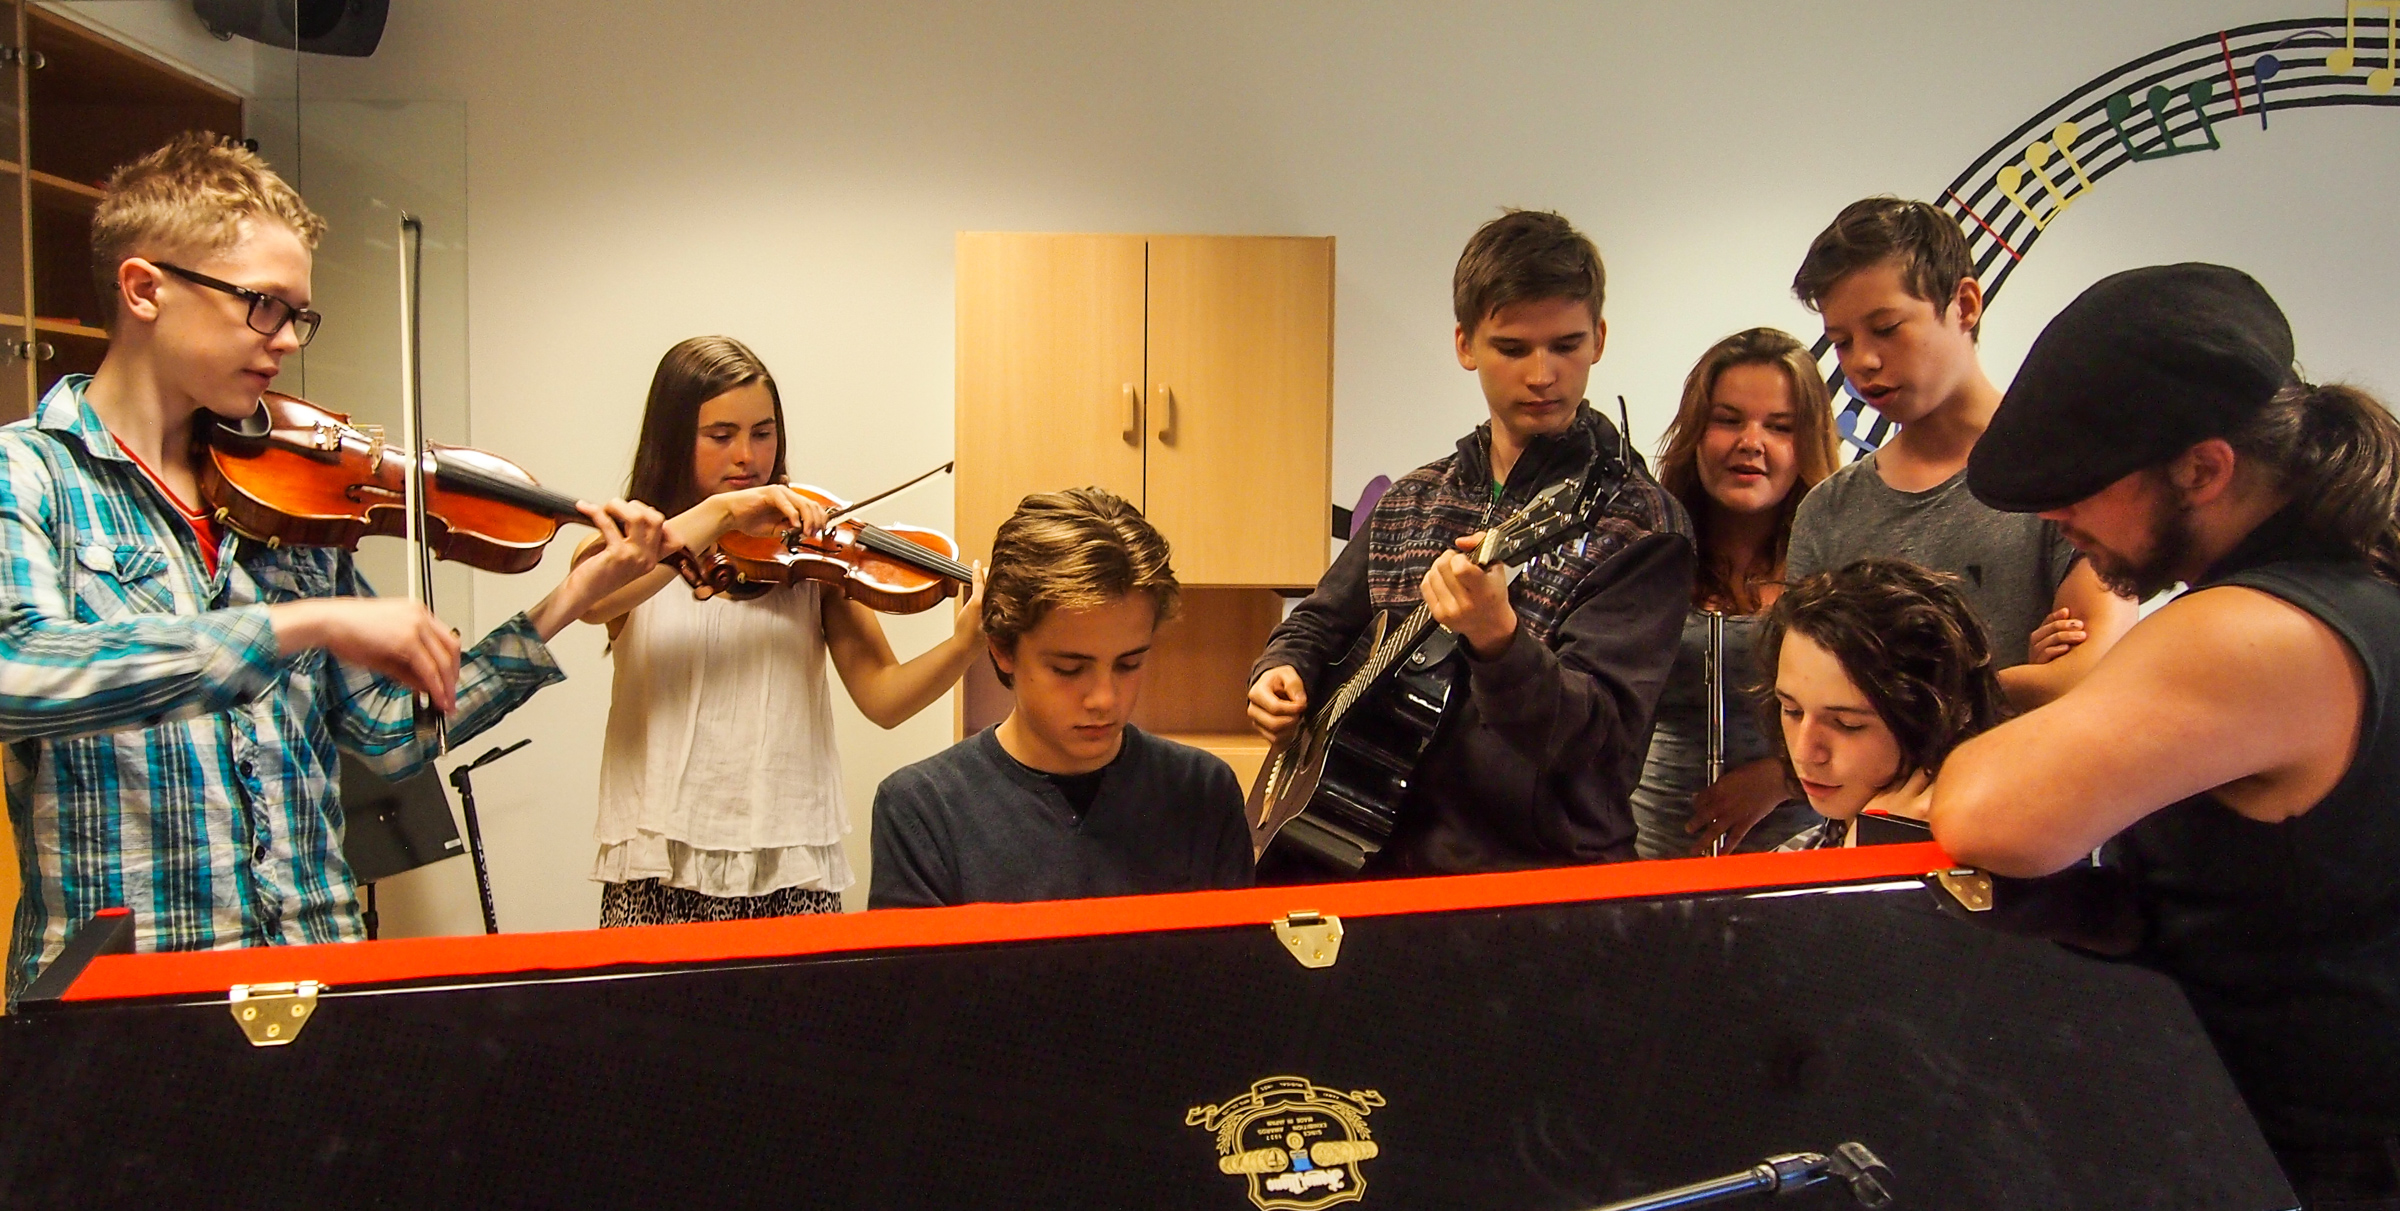 Music students from Norway, Sweden, Greenland, Iceland, Svalbard, Finland and Denmark rehearsing together. JONAA@Mats Moldskred